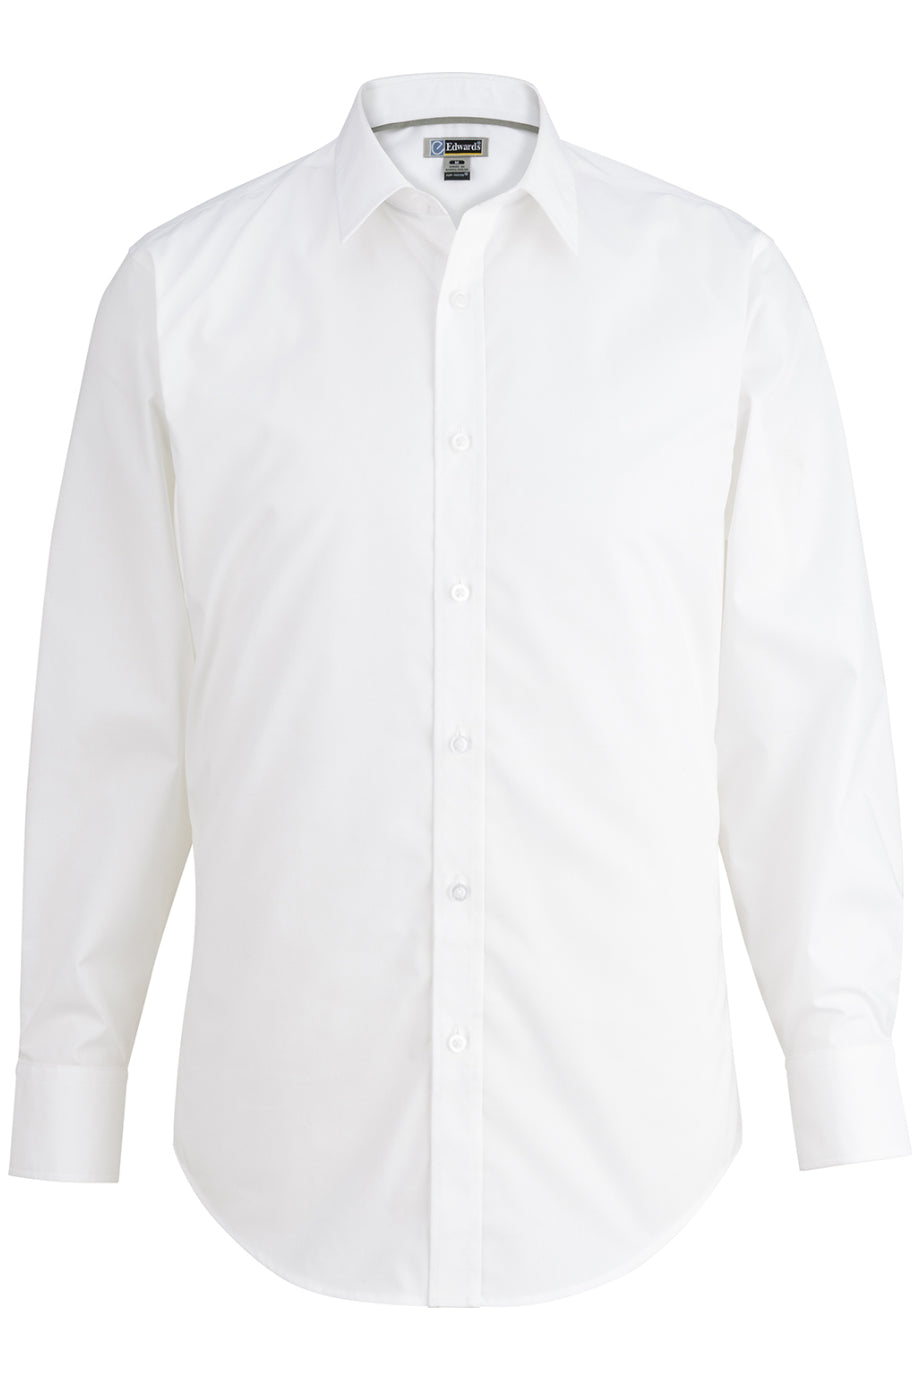 White Edwards Mens L/S Stretch Broadcloth Shirt